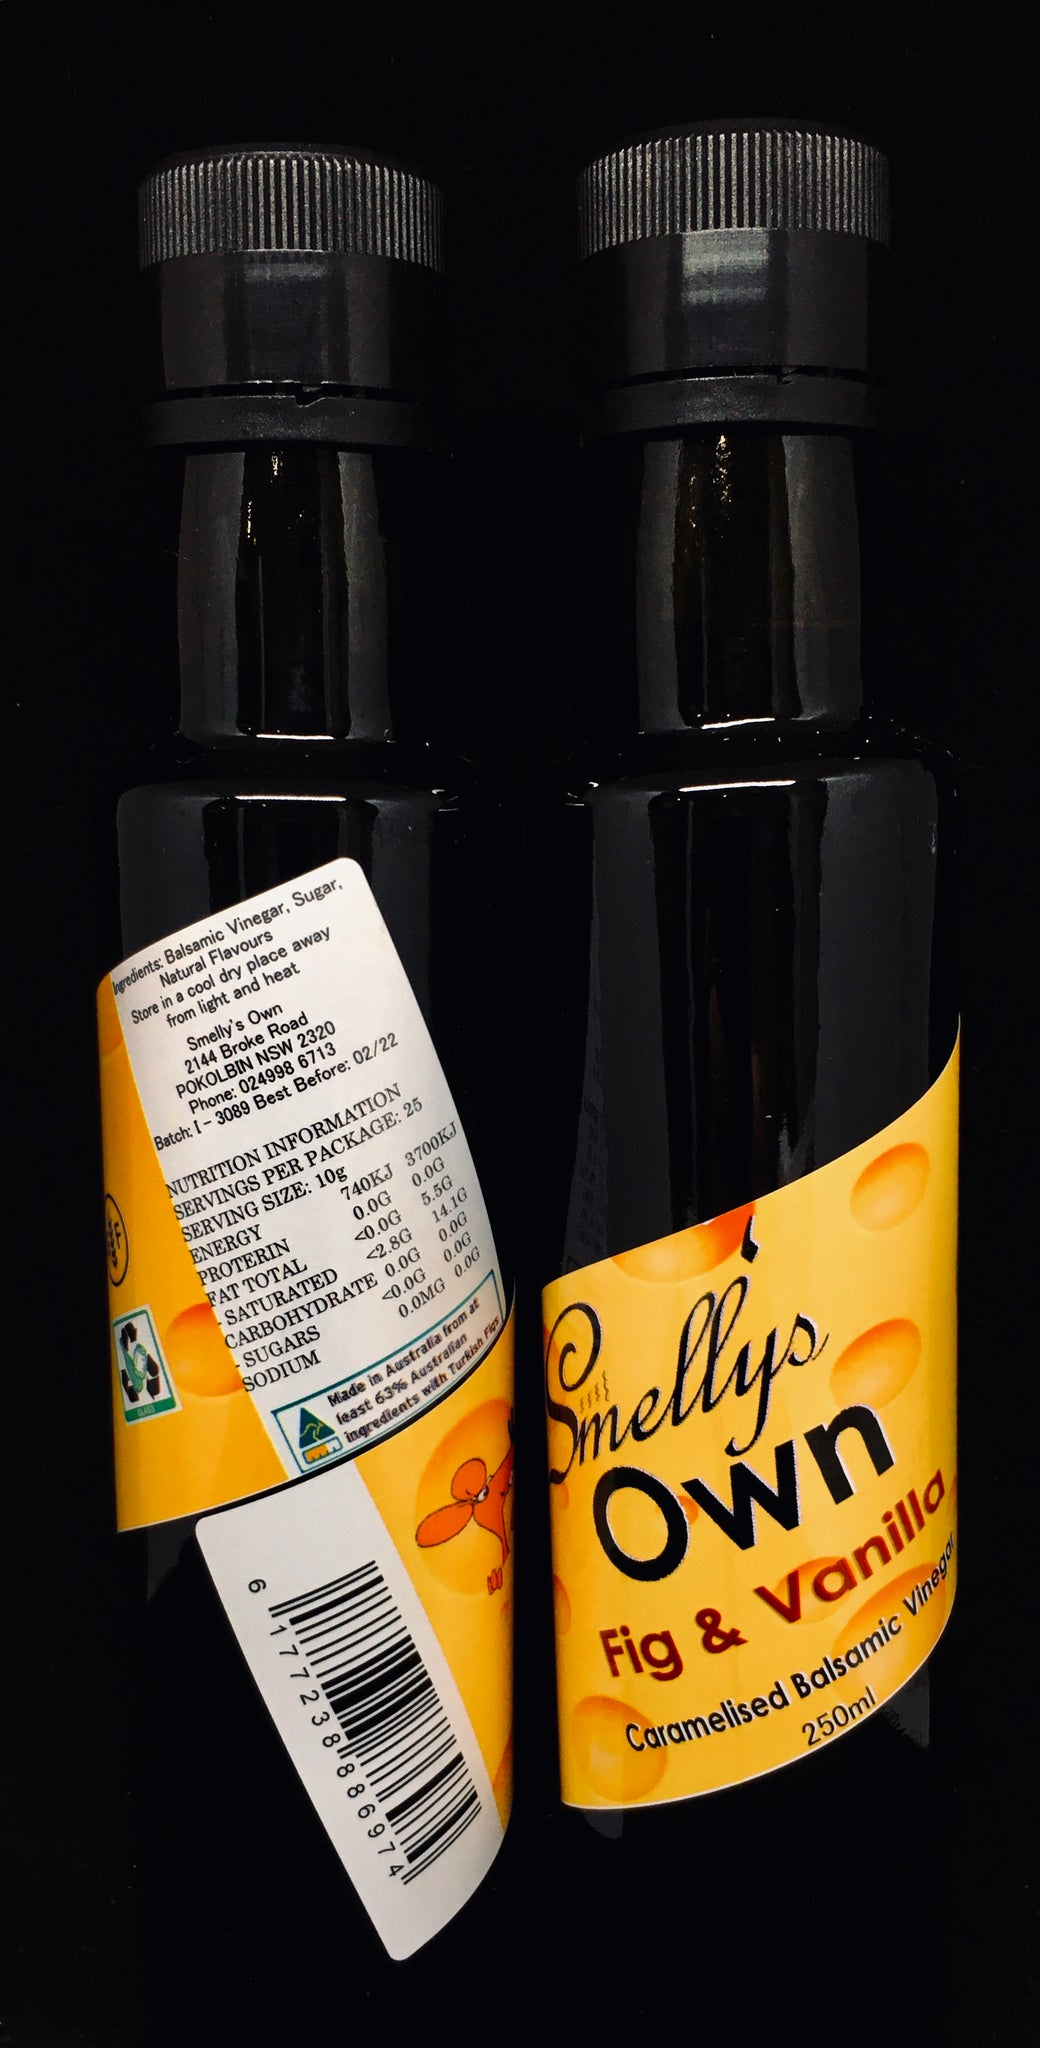 Smelly's Own - Fig & Vanilla Balsamic Vinegar